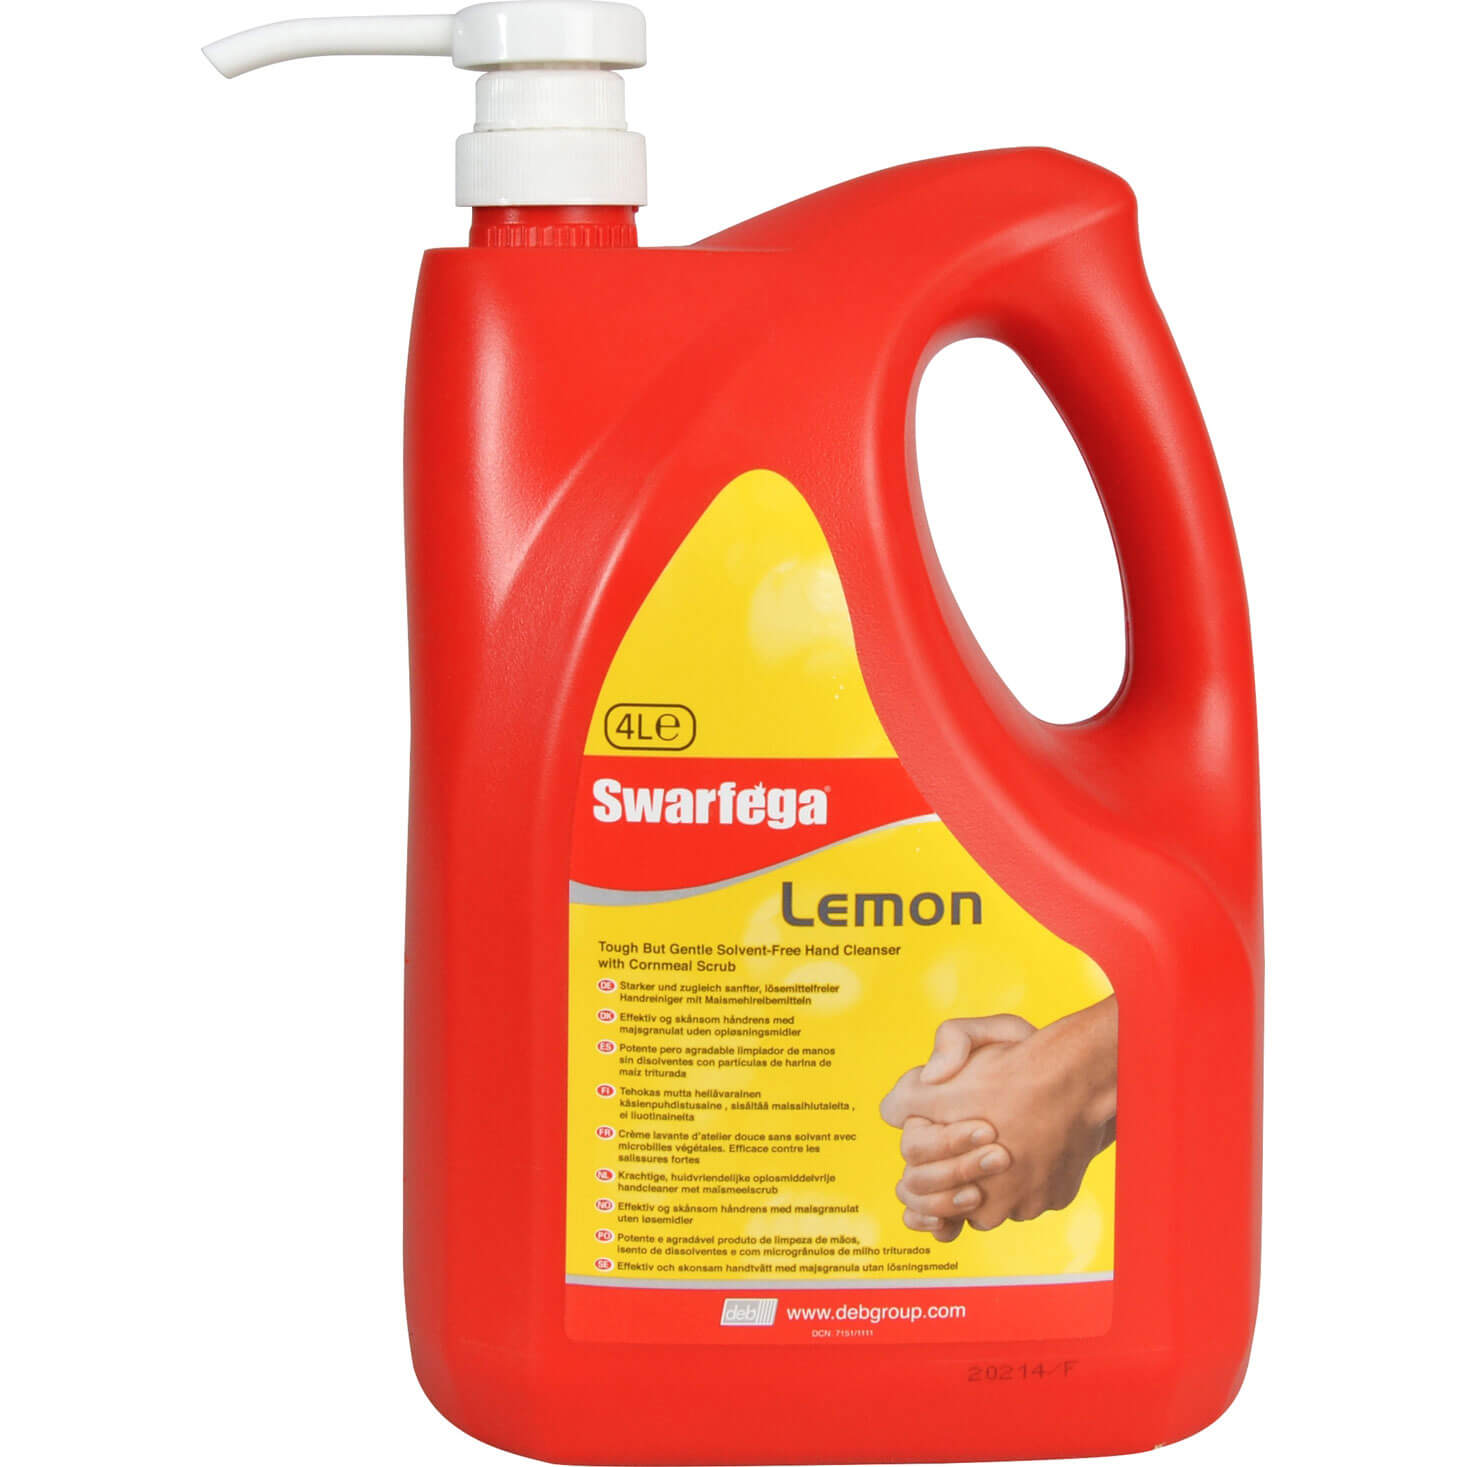 Swarfega Lemon Hand Cleaner in Pump Top Bottle 4L